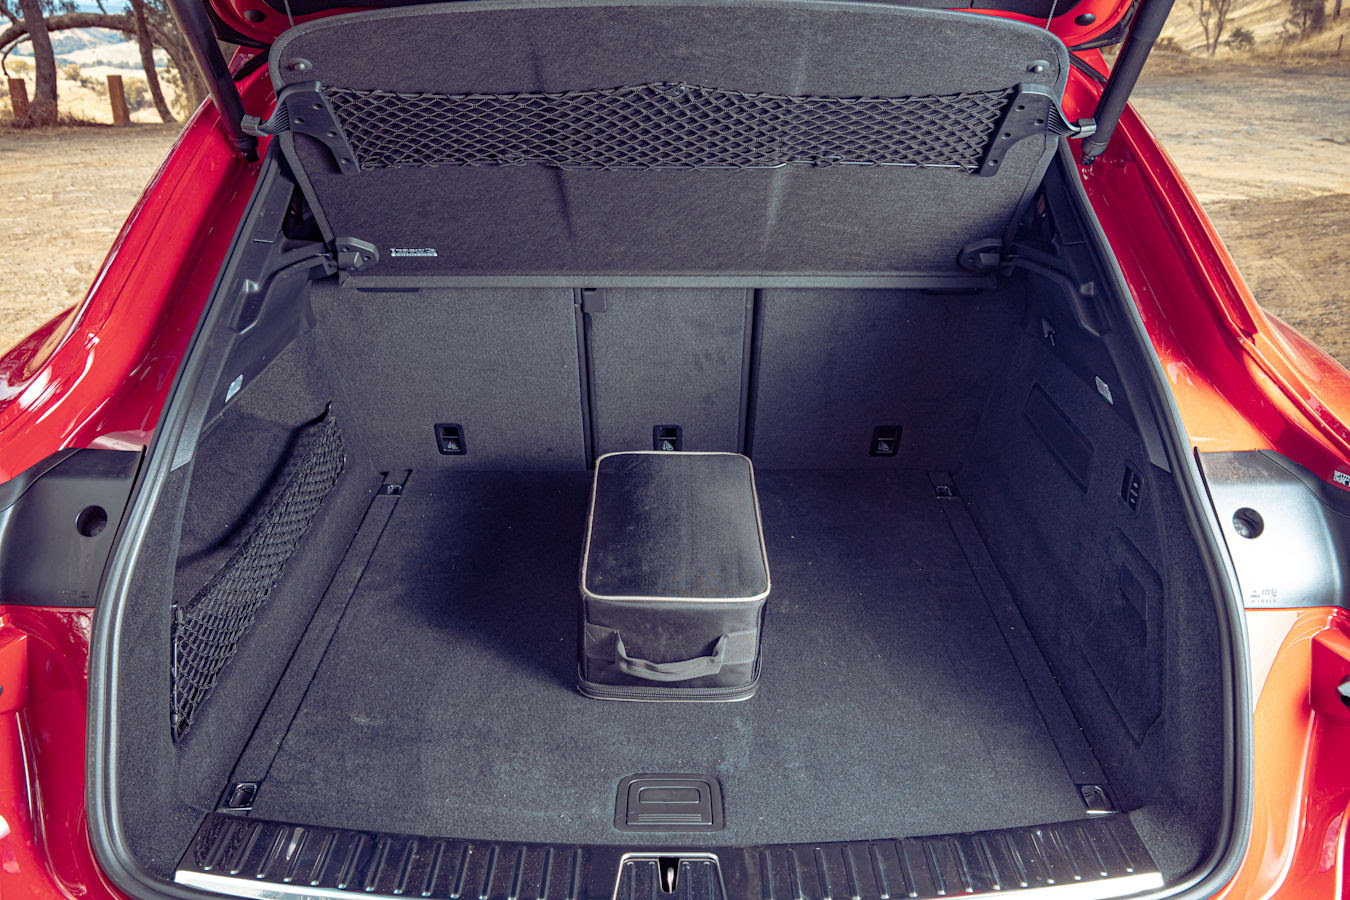 Motor Reviews Porsche Cayenne GTS Coupe Luggage Space